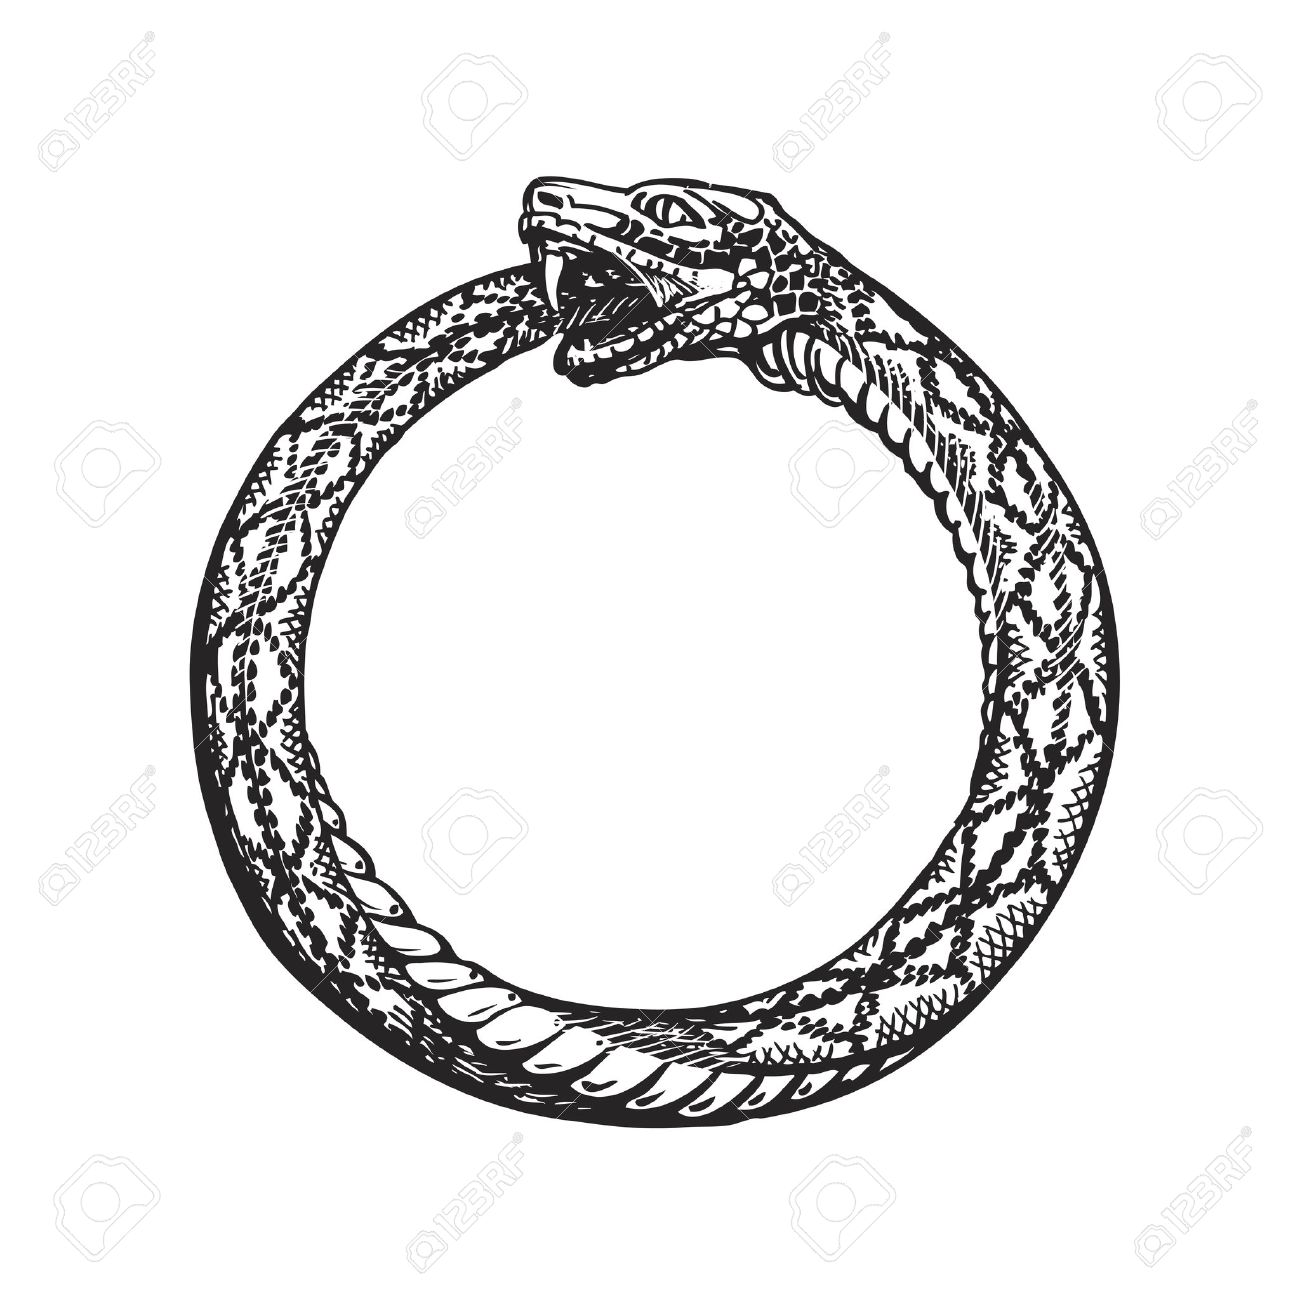 1300x1300 Ouroboros. Snake Eating Its Own Tail. Eternity Or Infinity Symbol